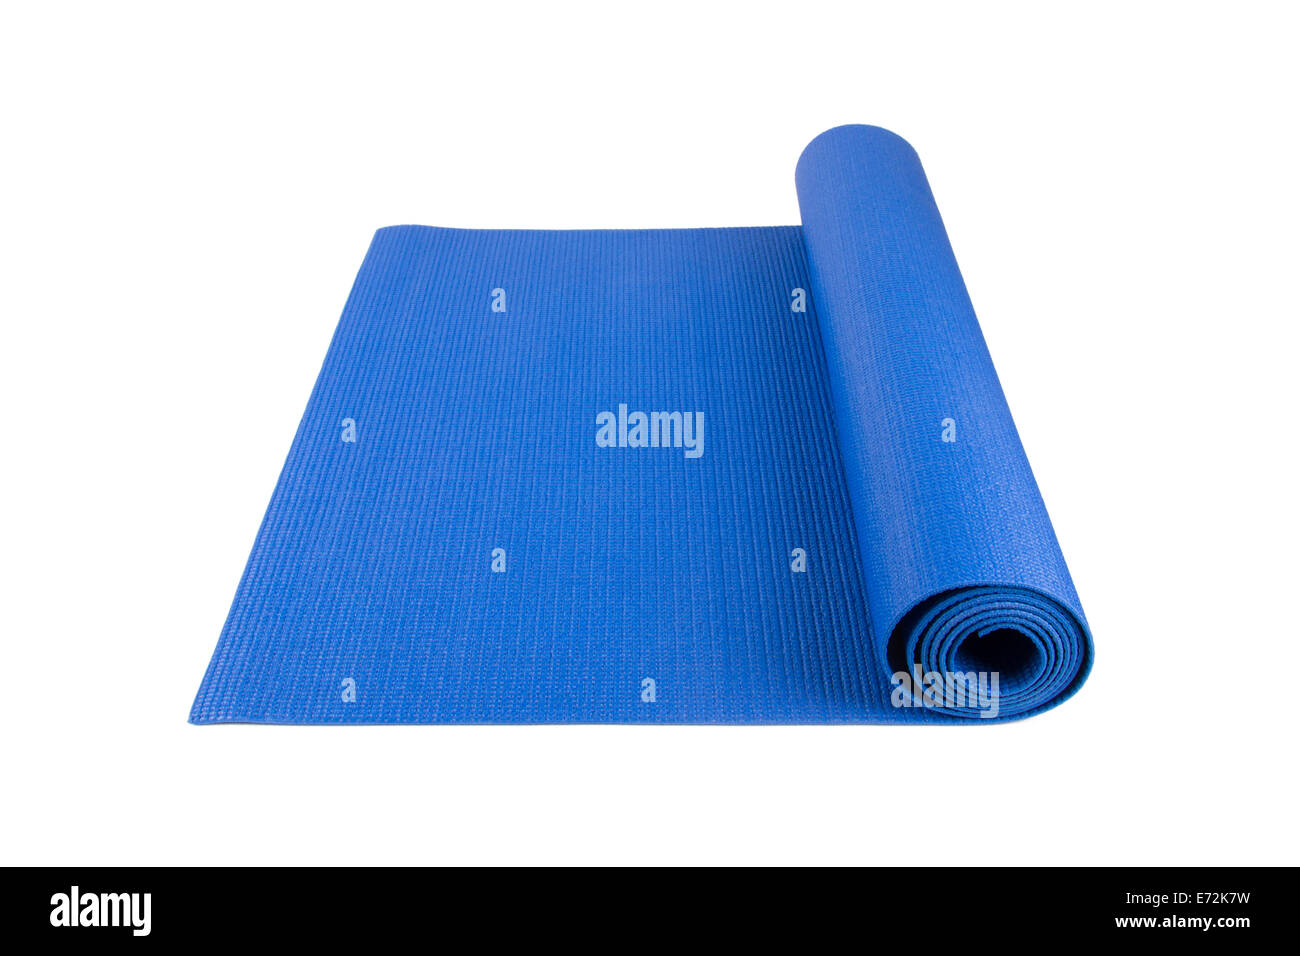 Side View Of Blue Rolled Yoga Pilates Or Fitness Mat For Exercise Stock Photo Alamy